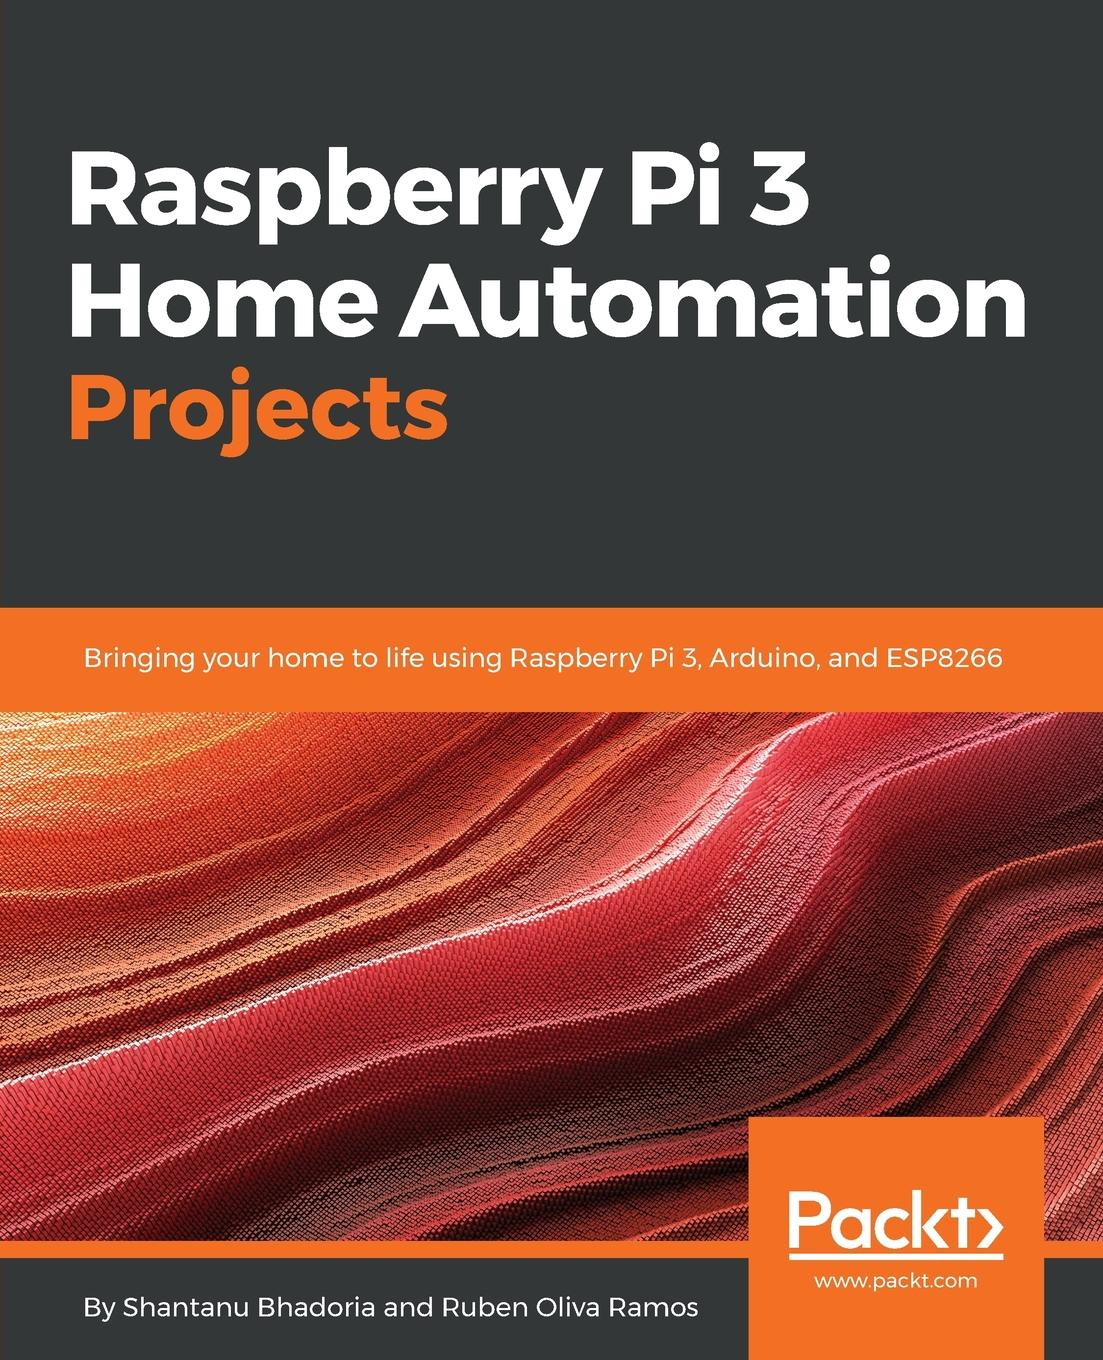 Shantanu Bhadoria, Ruben Oliva Ramos Raspberry Pi 3 Home Automation Projects радиаторы для raspberry pi 3 pi 2 3шт